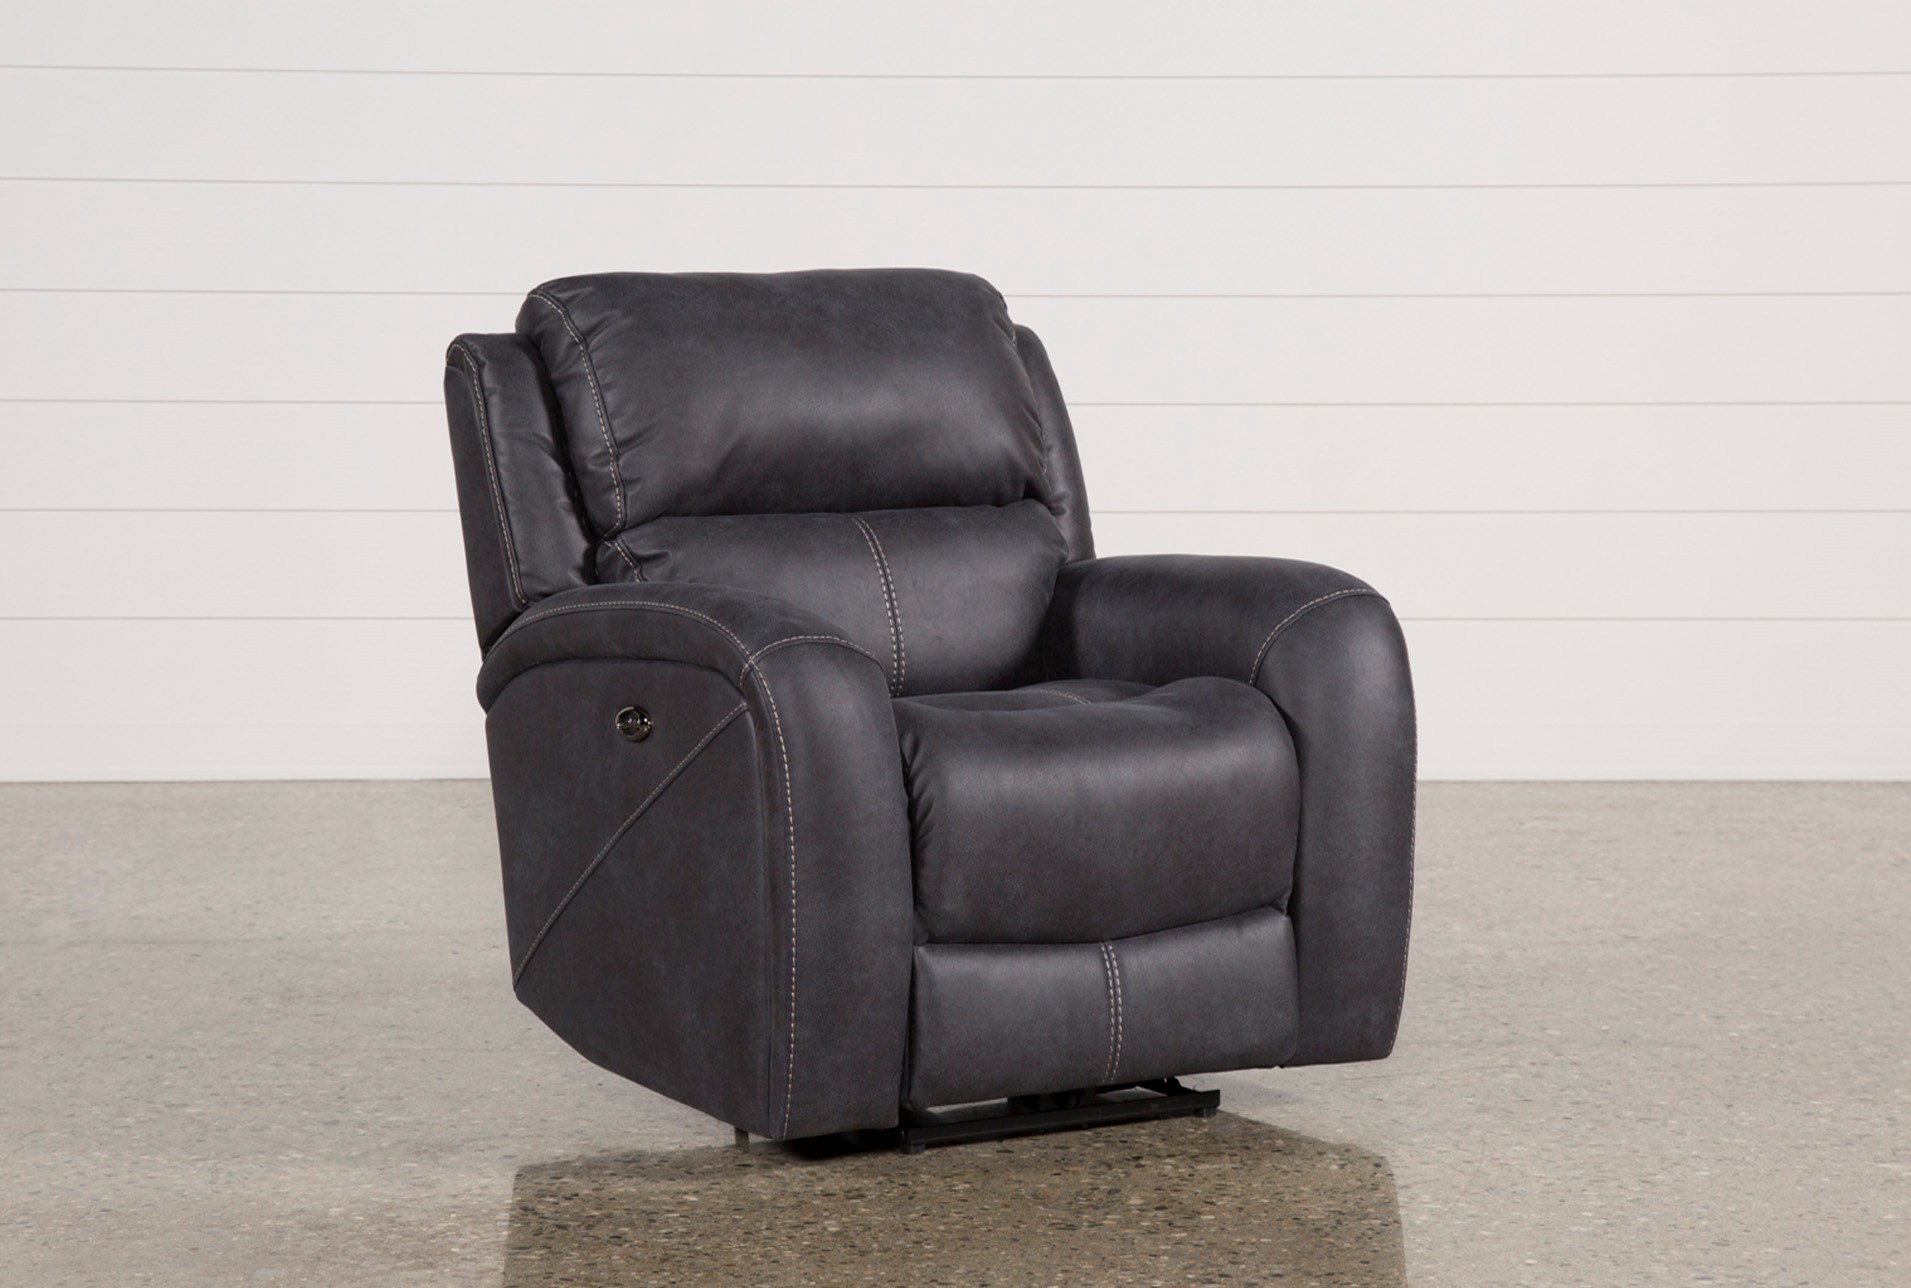 e20d28873004 Deegan Charcoal Power Recliner (Qty: 1) has been successfully added to your  Cart.